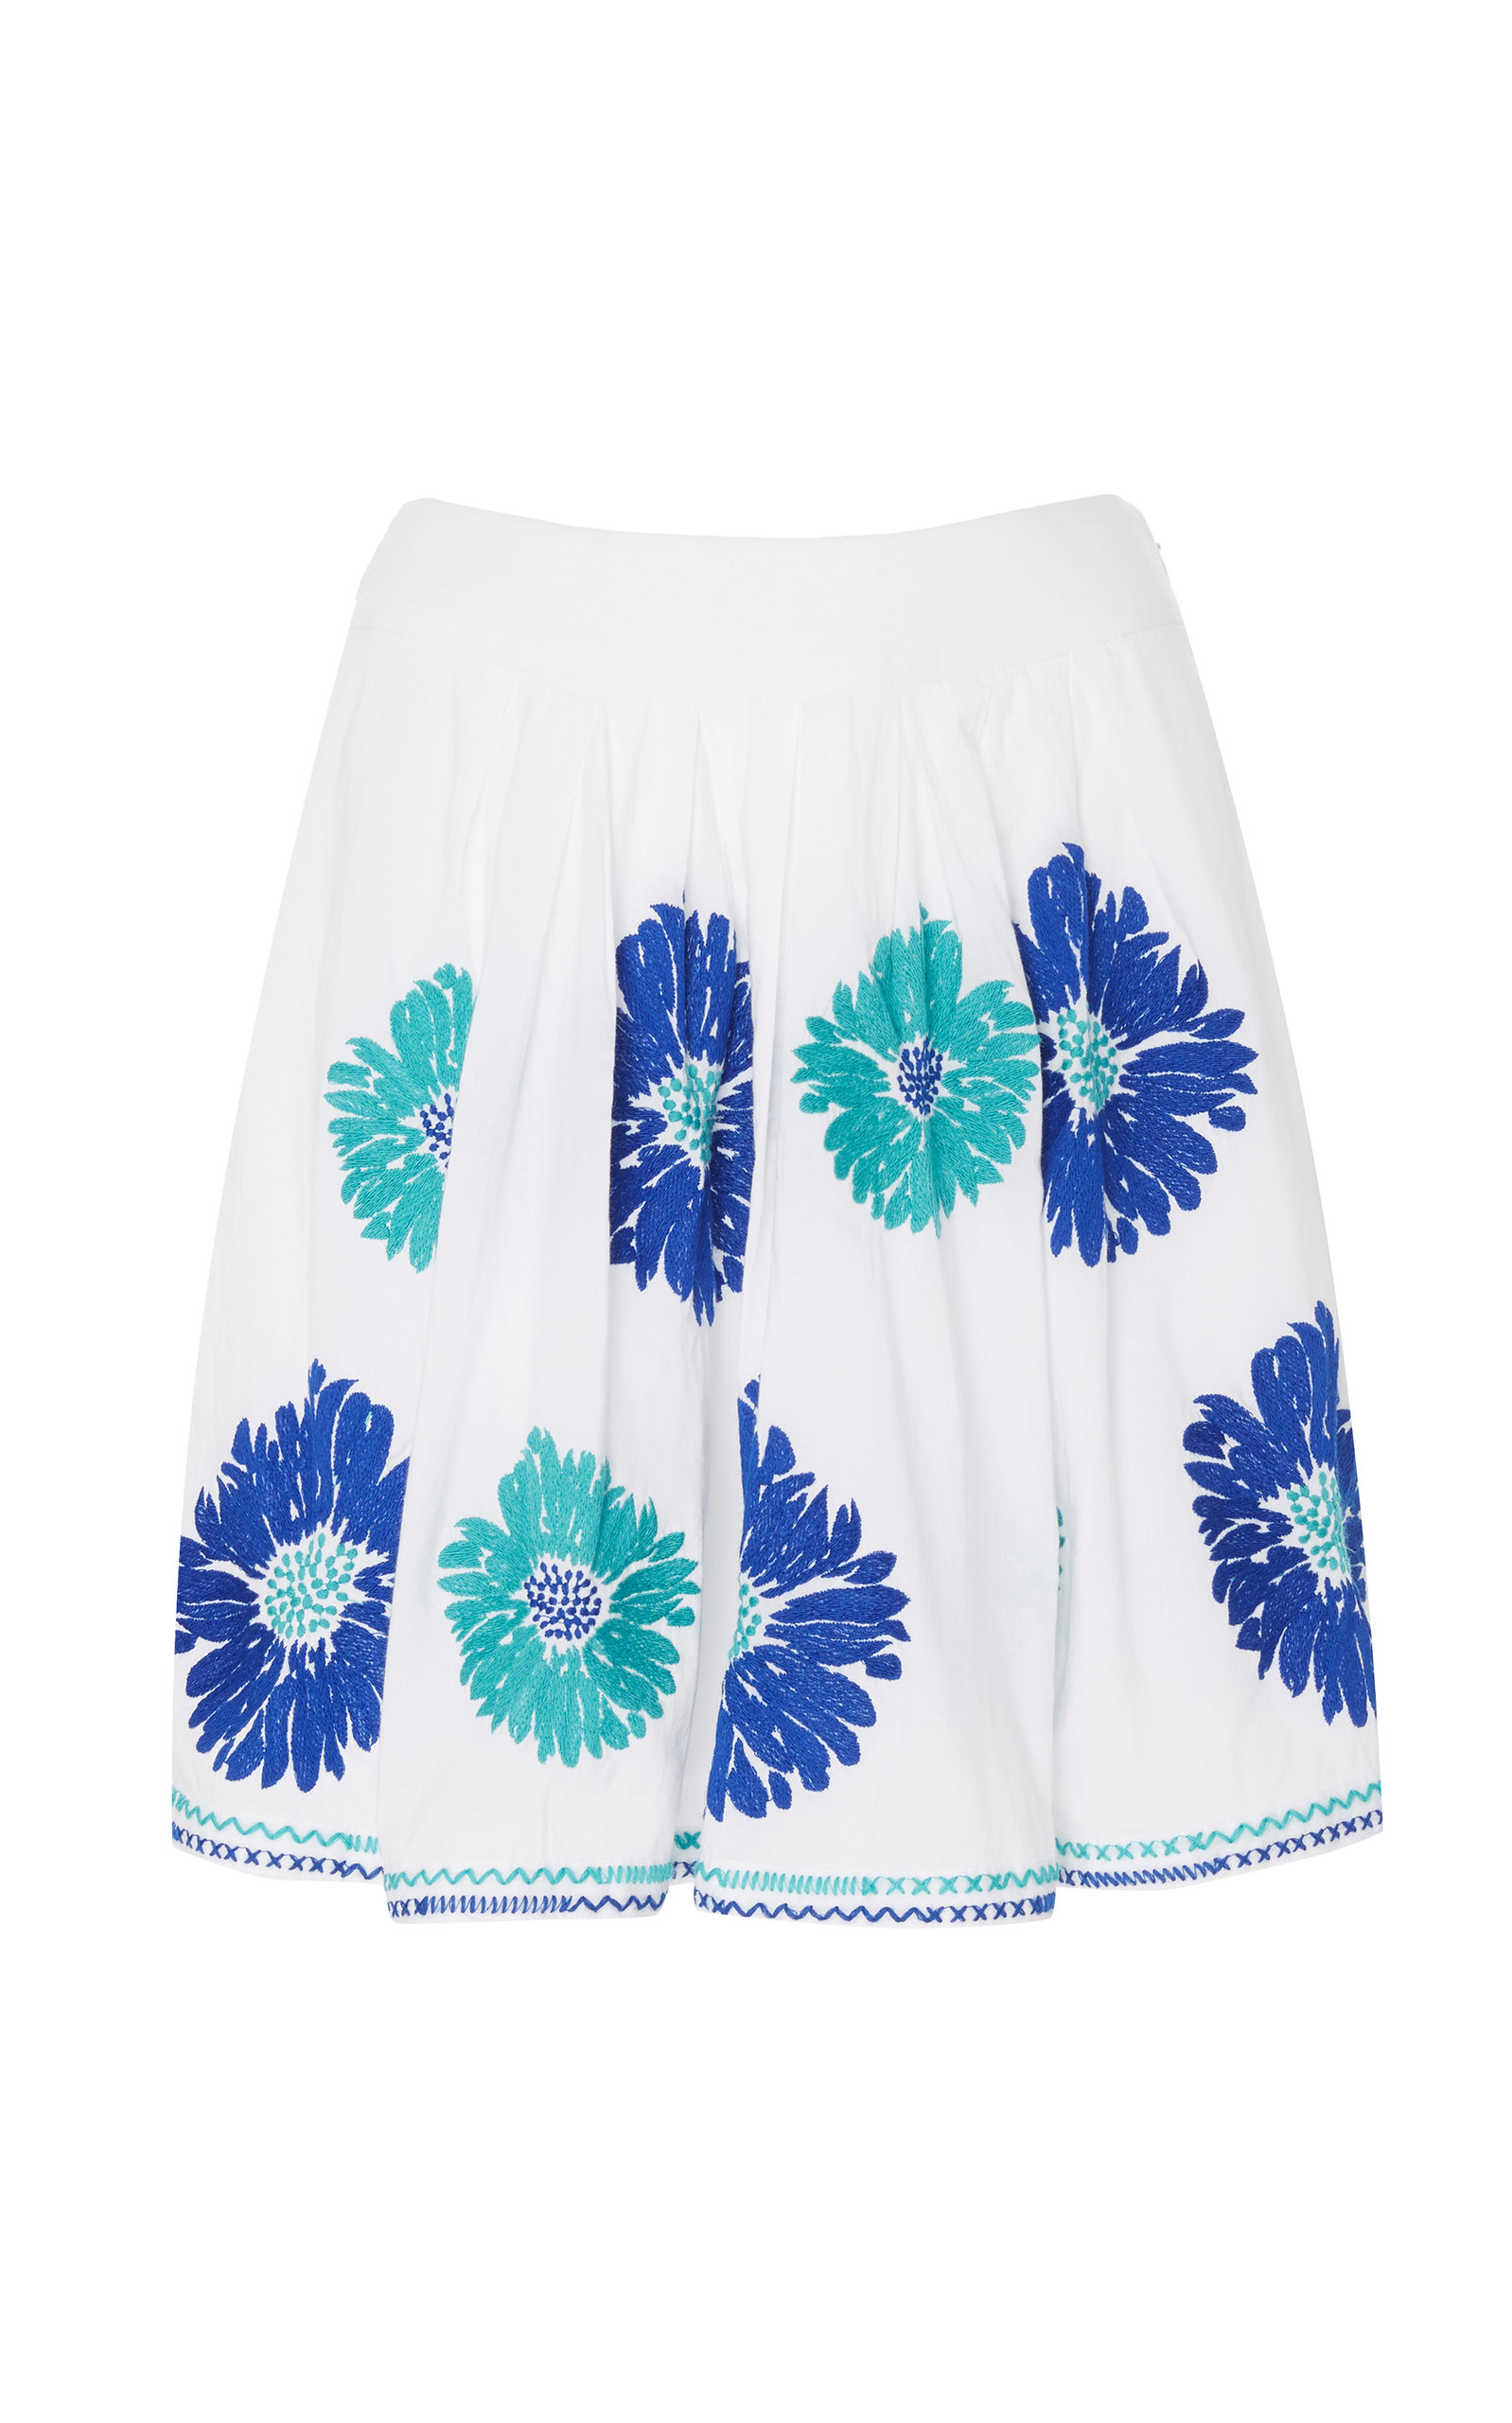 large_nimo-with-love-floral-moscow-mule-embroidered-floral-cotton-mini-skirt.jpg